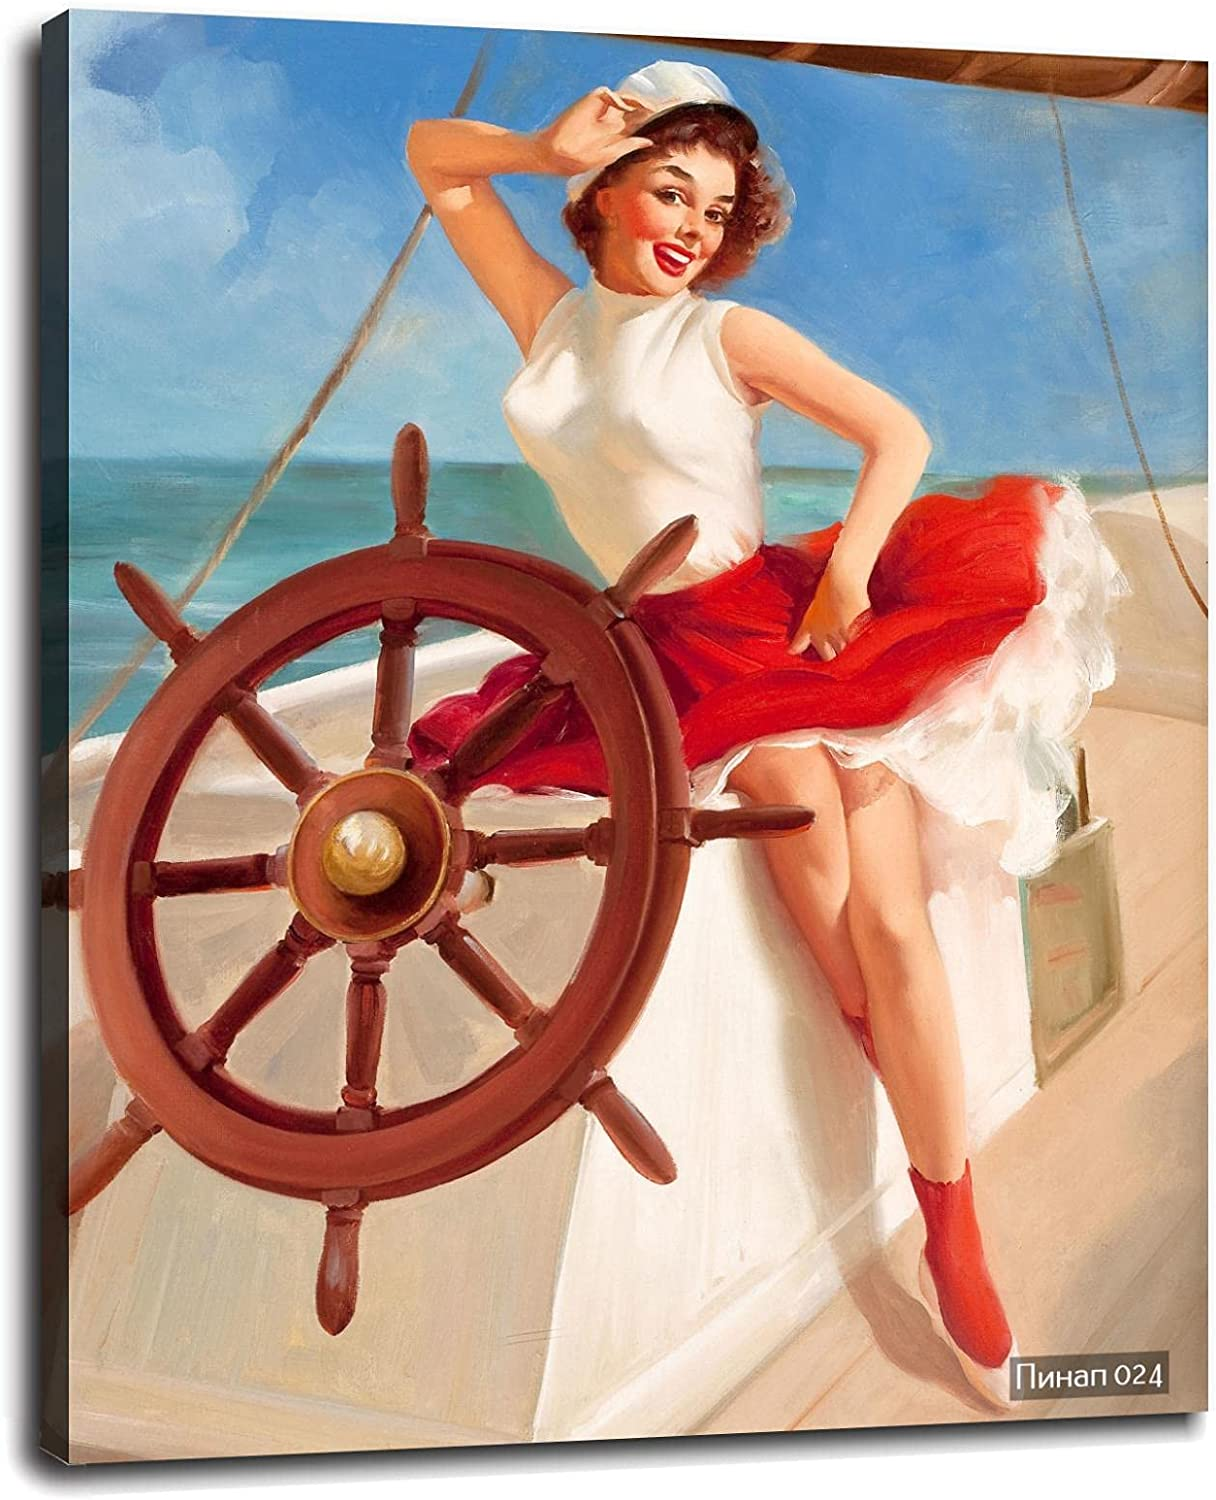 Sailor Girl Beauty products 1950s Vintage Style Elvgren Boat Poster trust Sail Pin-Up